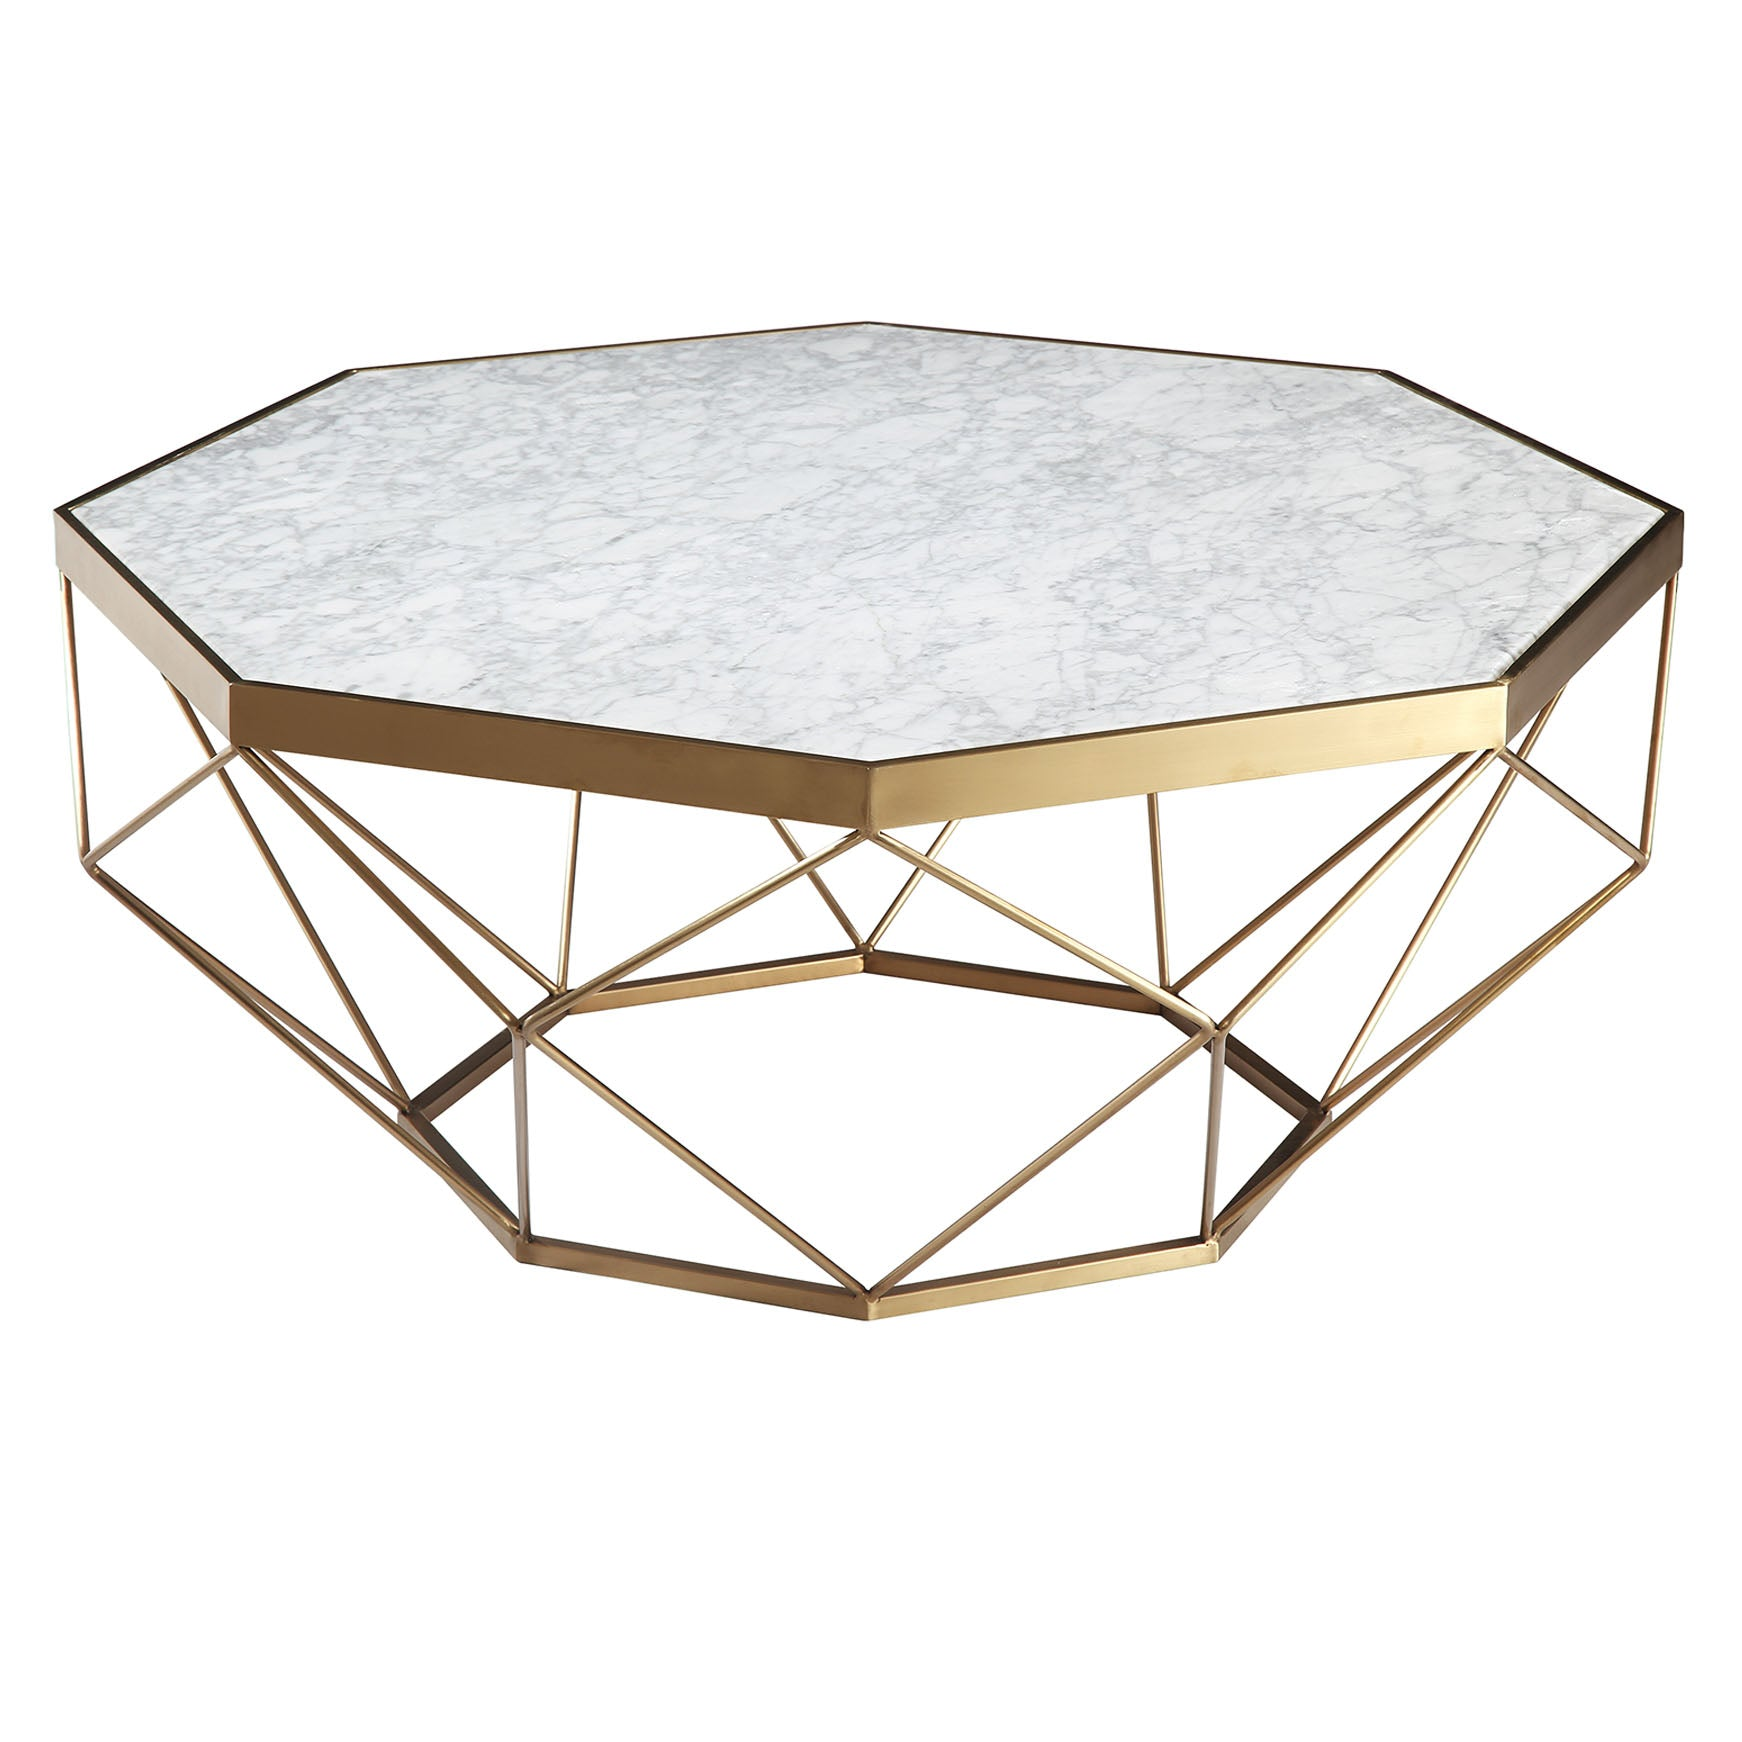 Natural Marble & Stainless Steel Table BP8811- B -  طاول من الرخام الطبيعي والفولاذ المقاوم للصدأ - Shop Online Furniture and Home Decor Store in Dubai, UAE at ebarza